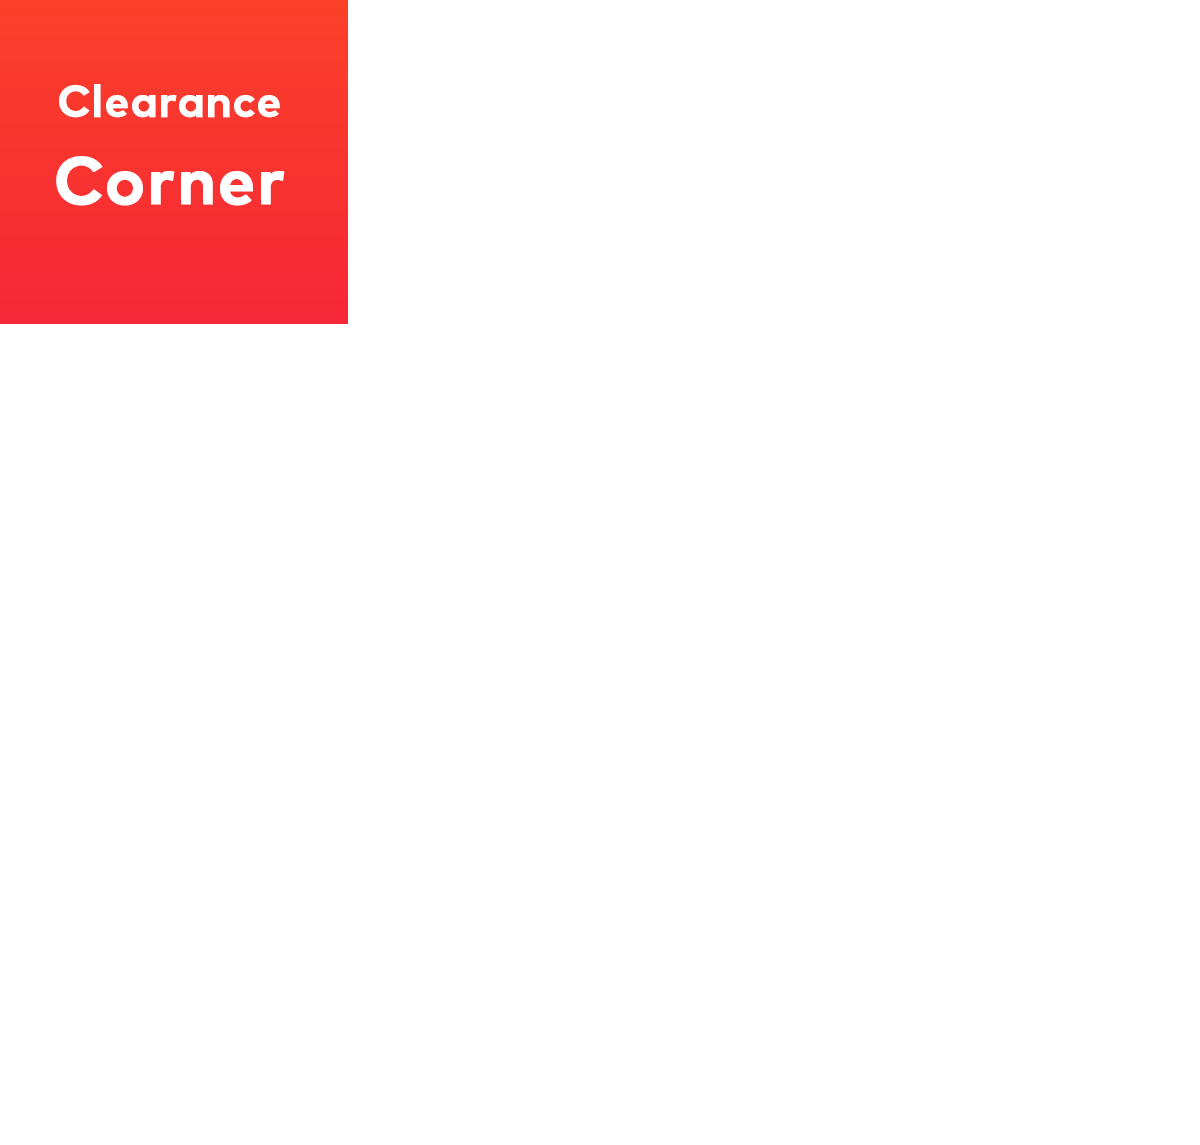 clearance-corner-badge